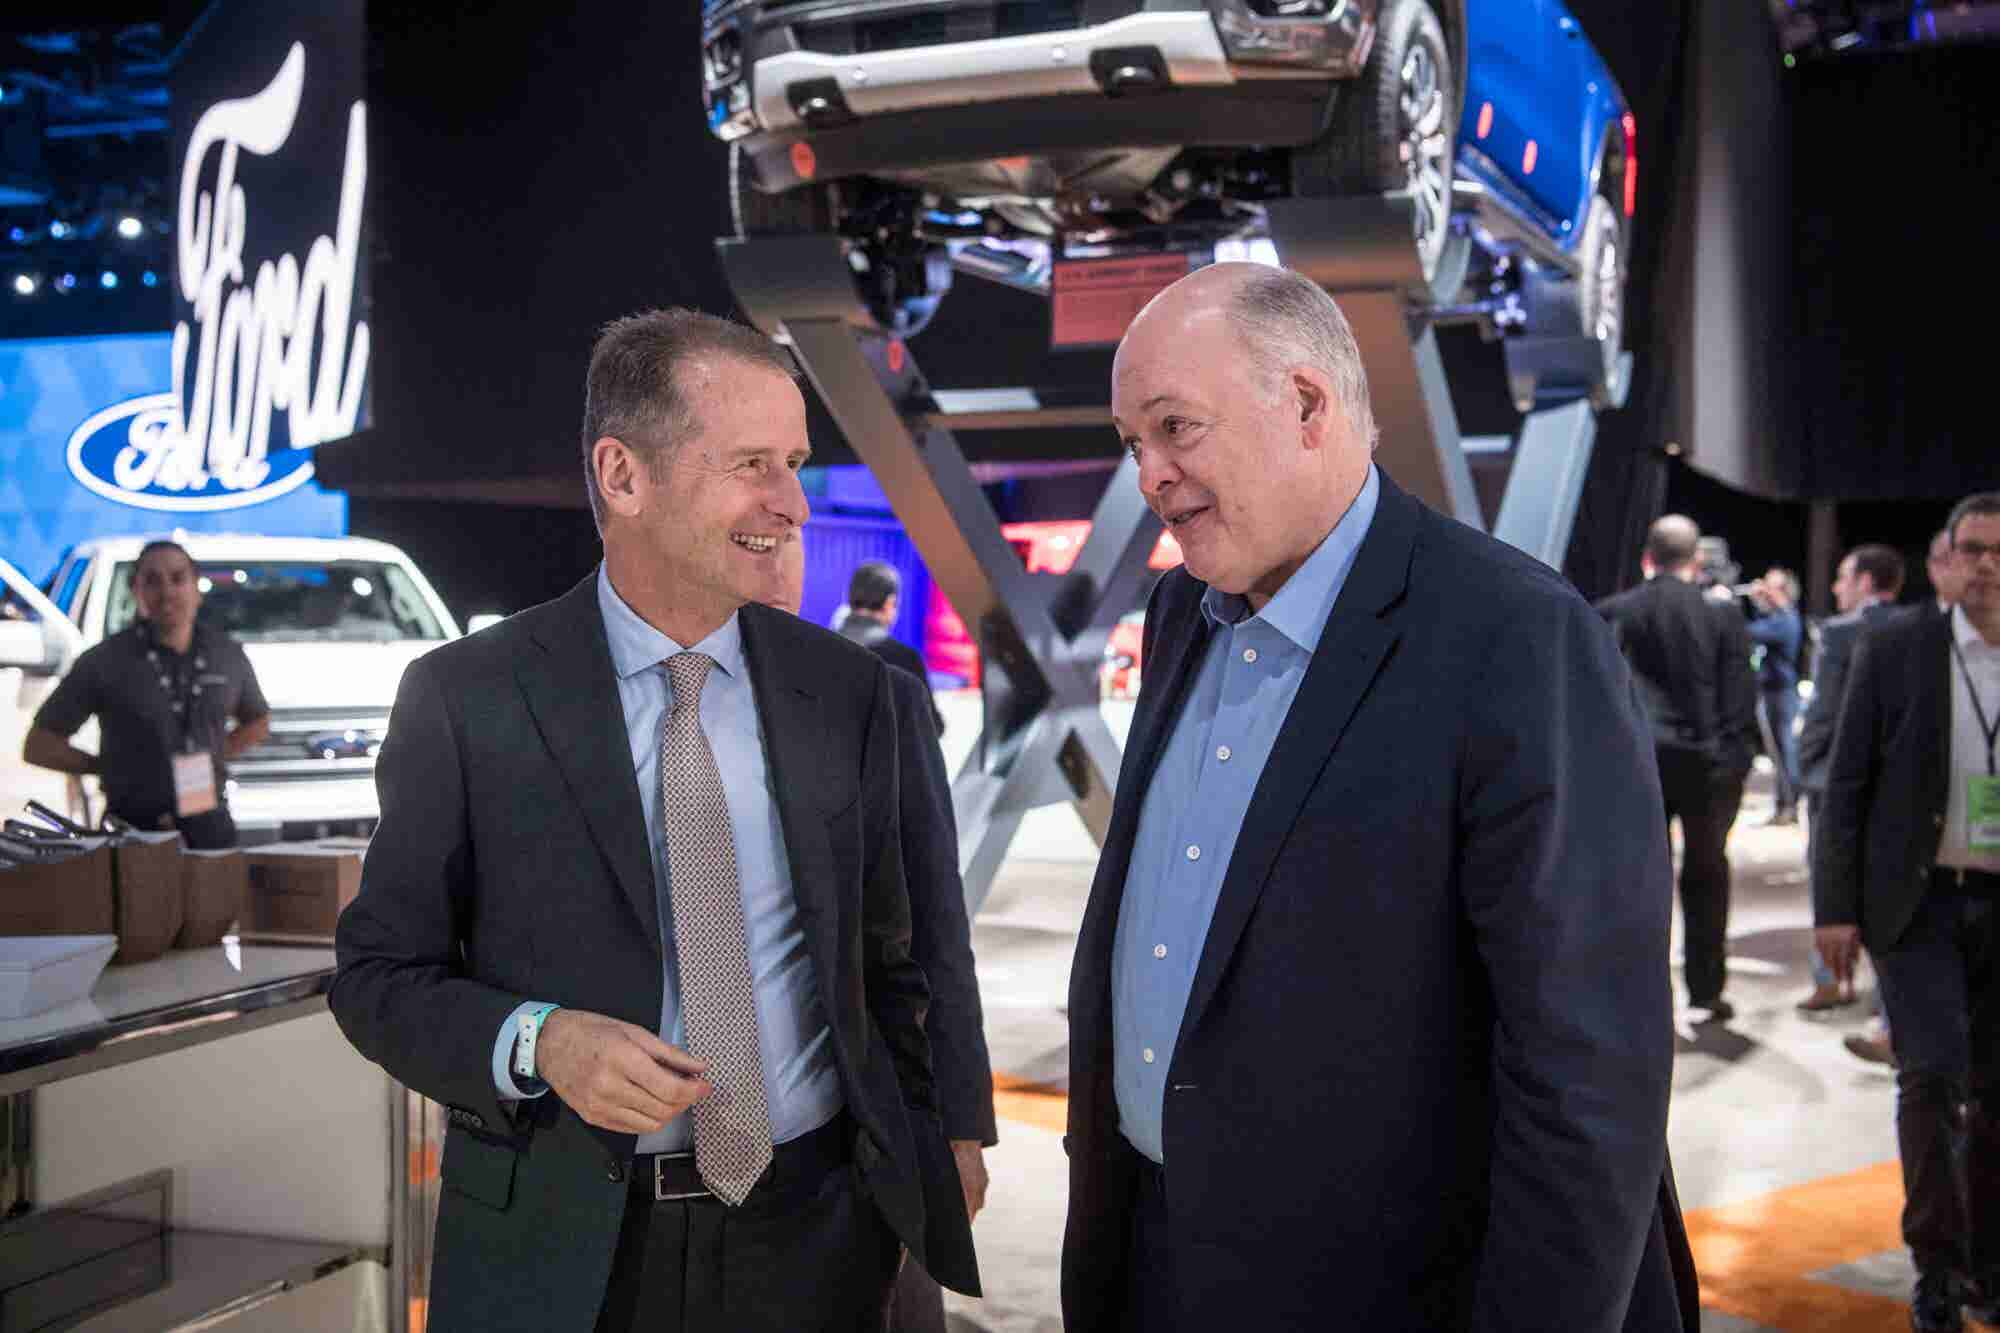 Ford Formally Announces a Partnership With Volkswagen, But Its Stock P...